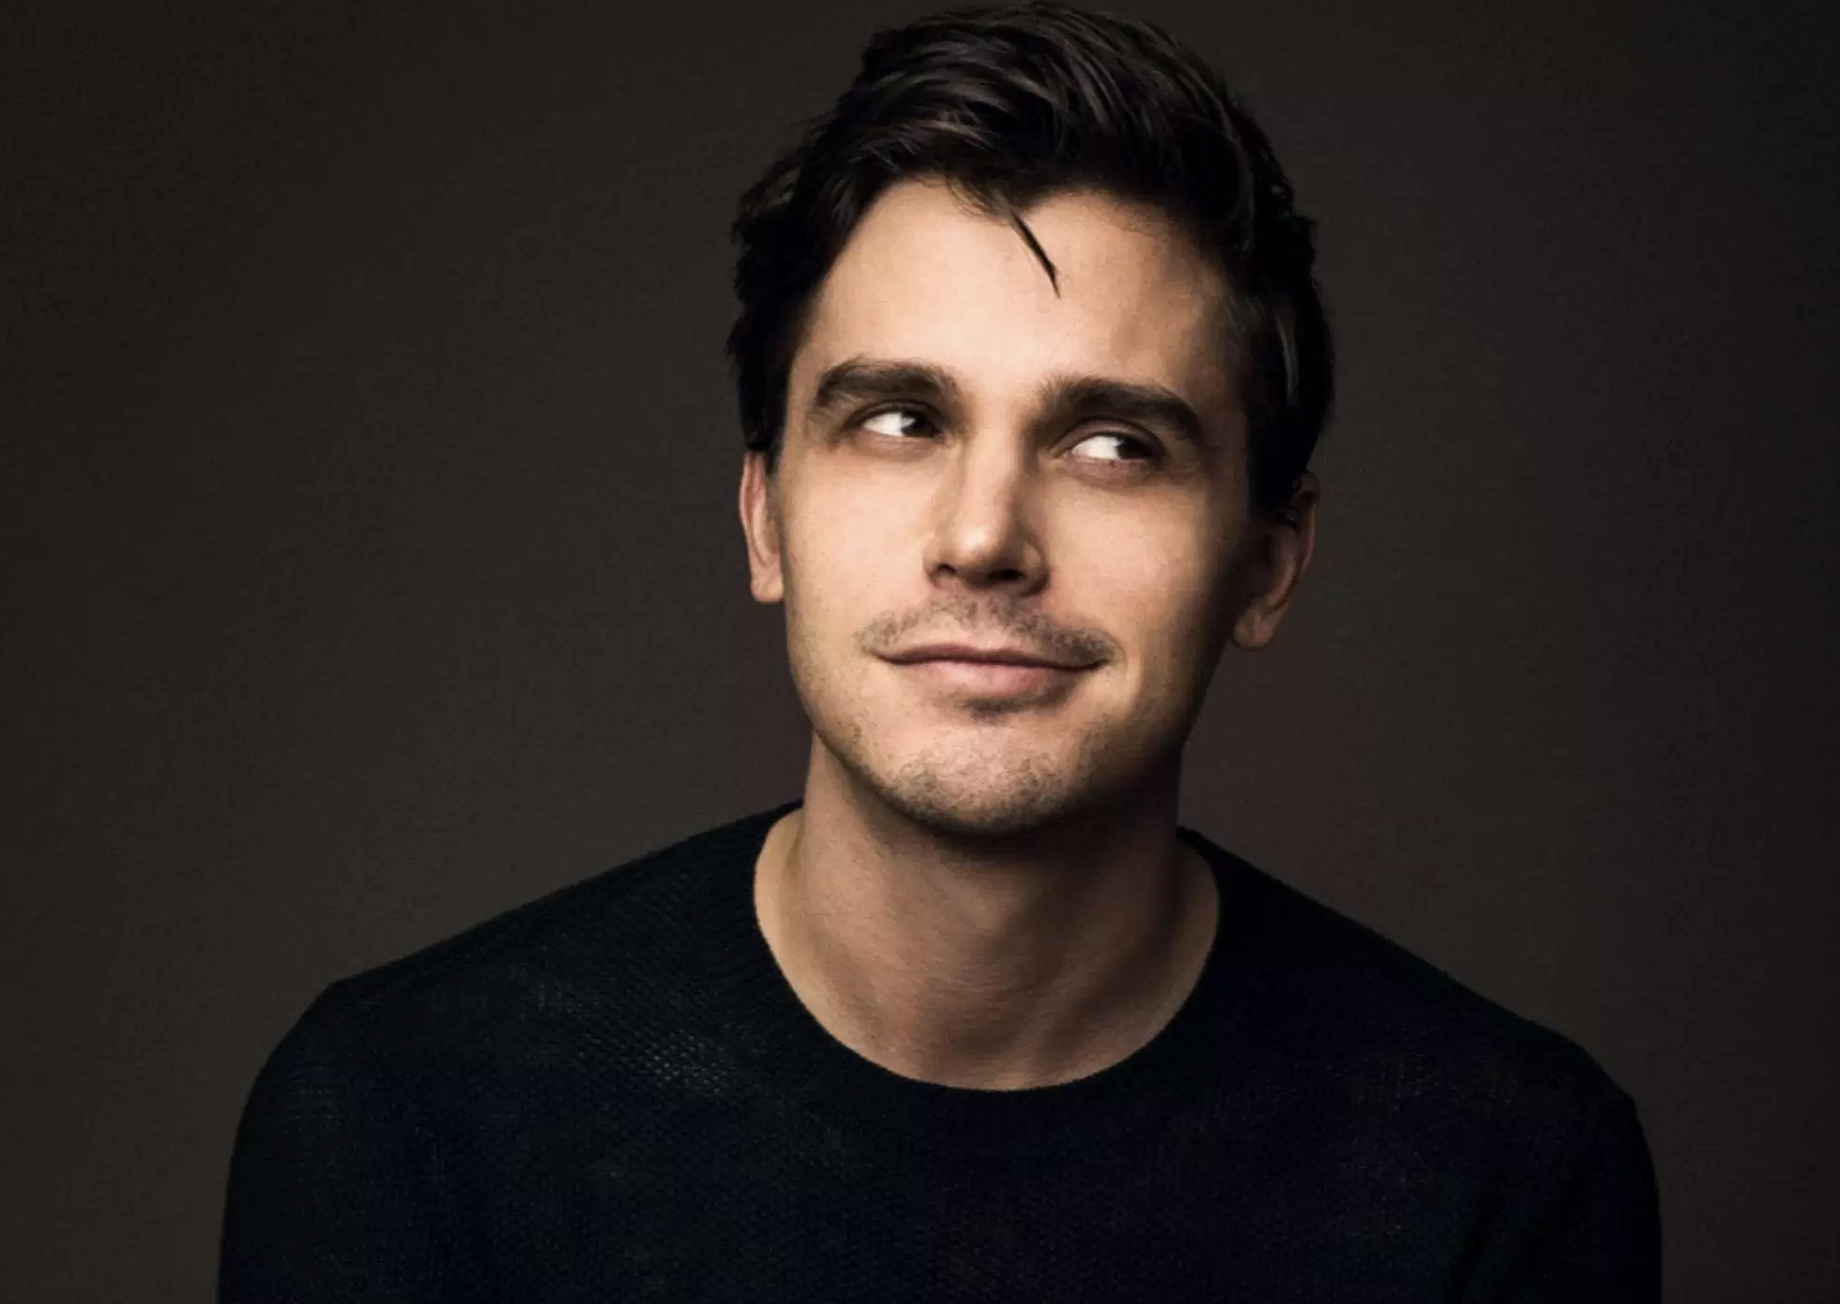 'Queer Eye' star Antoni Porowski coming to SU - I wrote this notice about the famous food and wine connoisseur bringing his culinary talents to SU with a cooking demo and audience Q&A